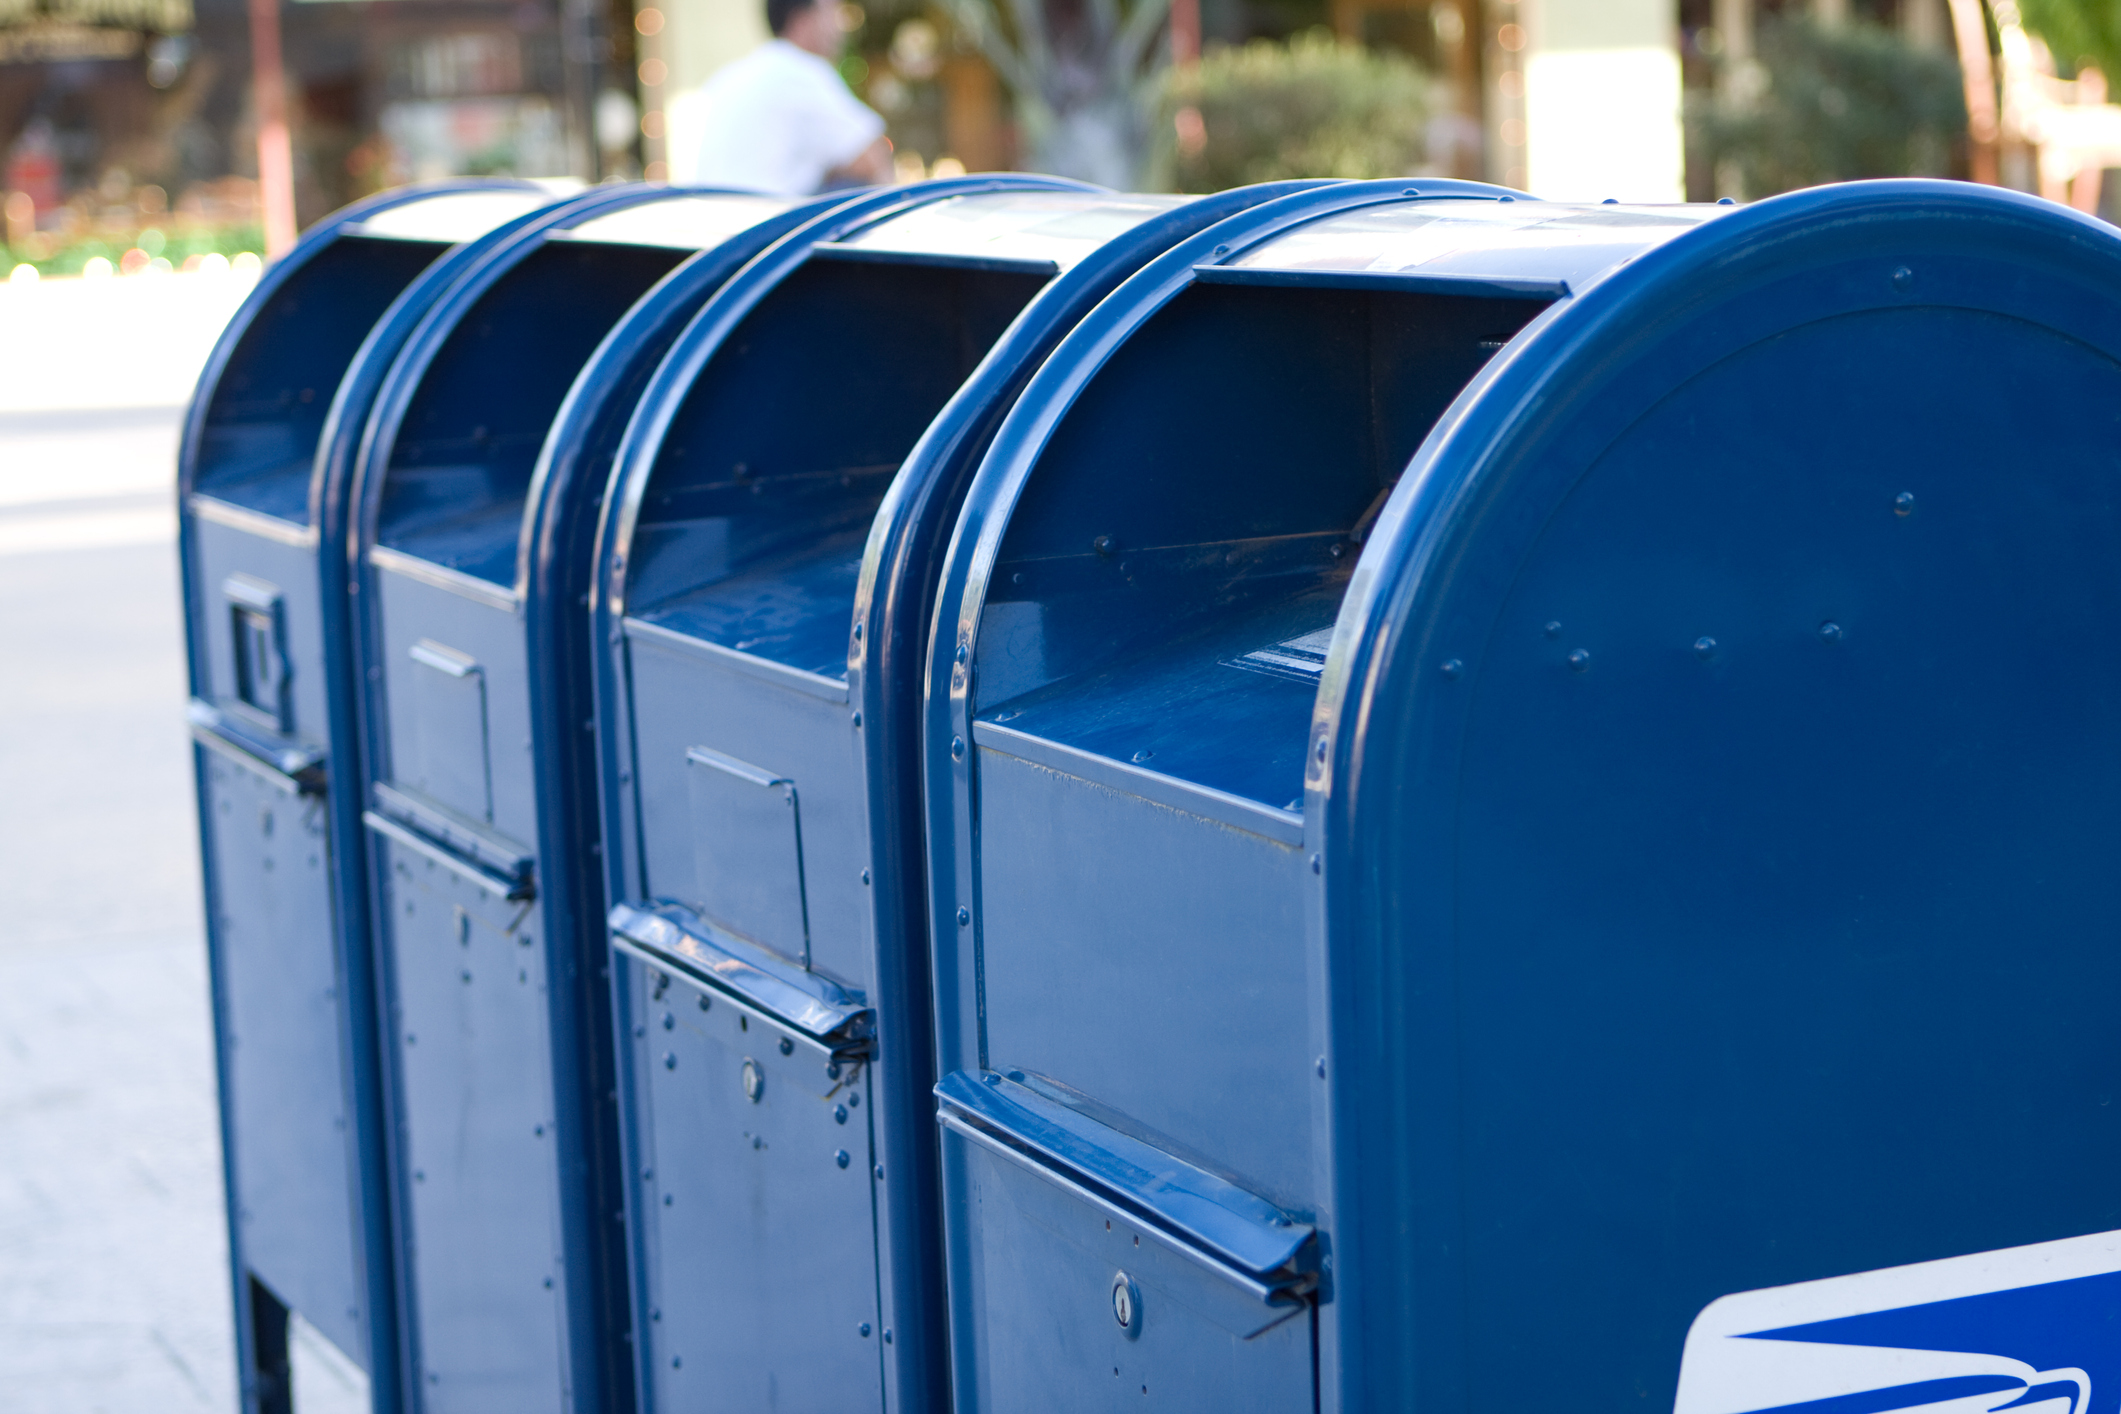 A row of blue mailboxes (Getty Images)